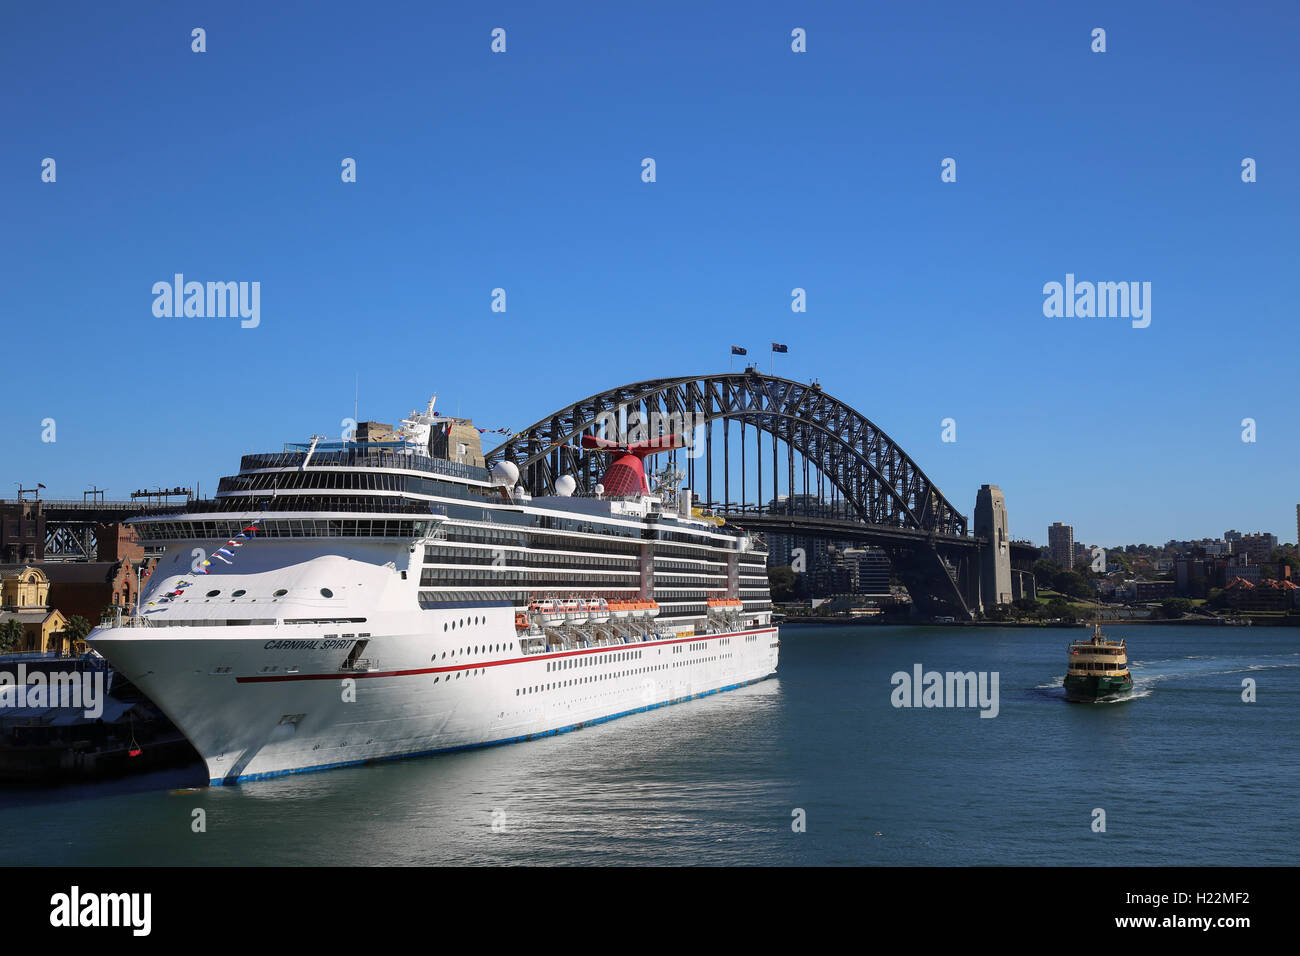 The luxury cruise ship Carnival Spirit berthed at the Overseas Passenger Terminal Sydney New South Wales Australia Stock Photo